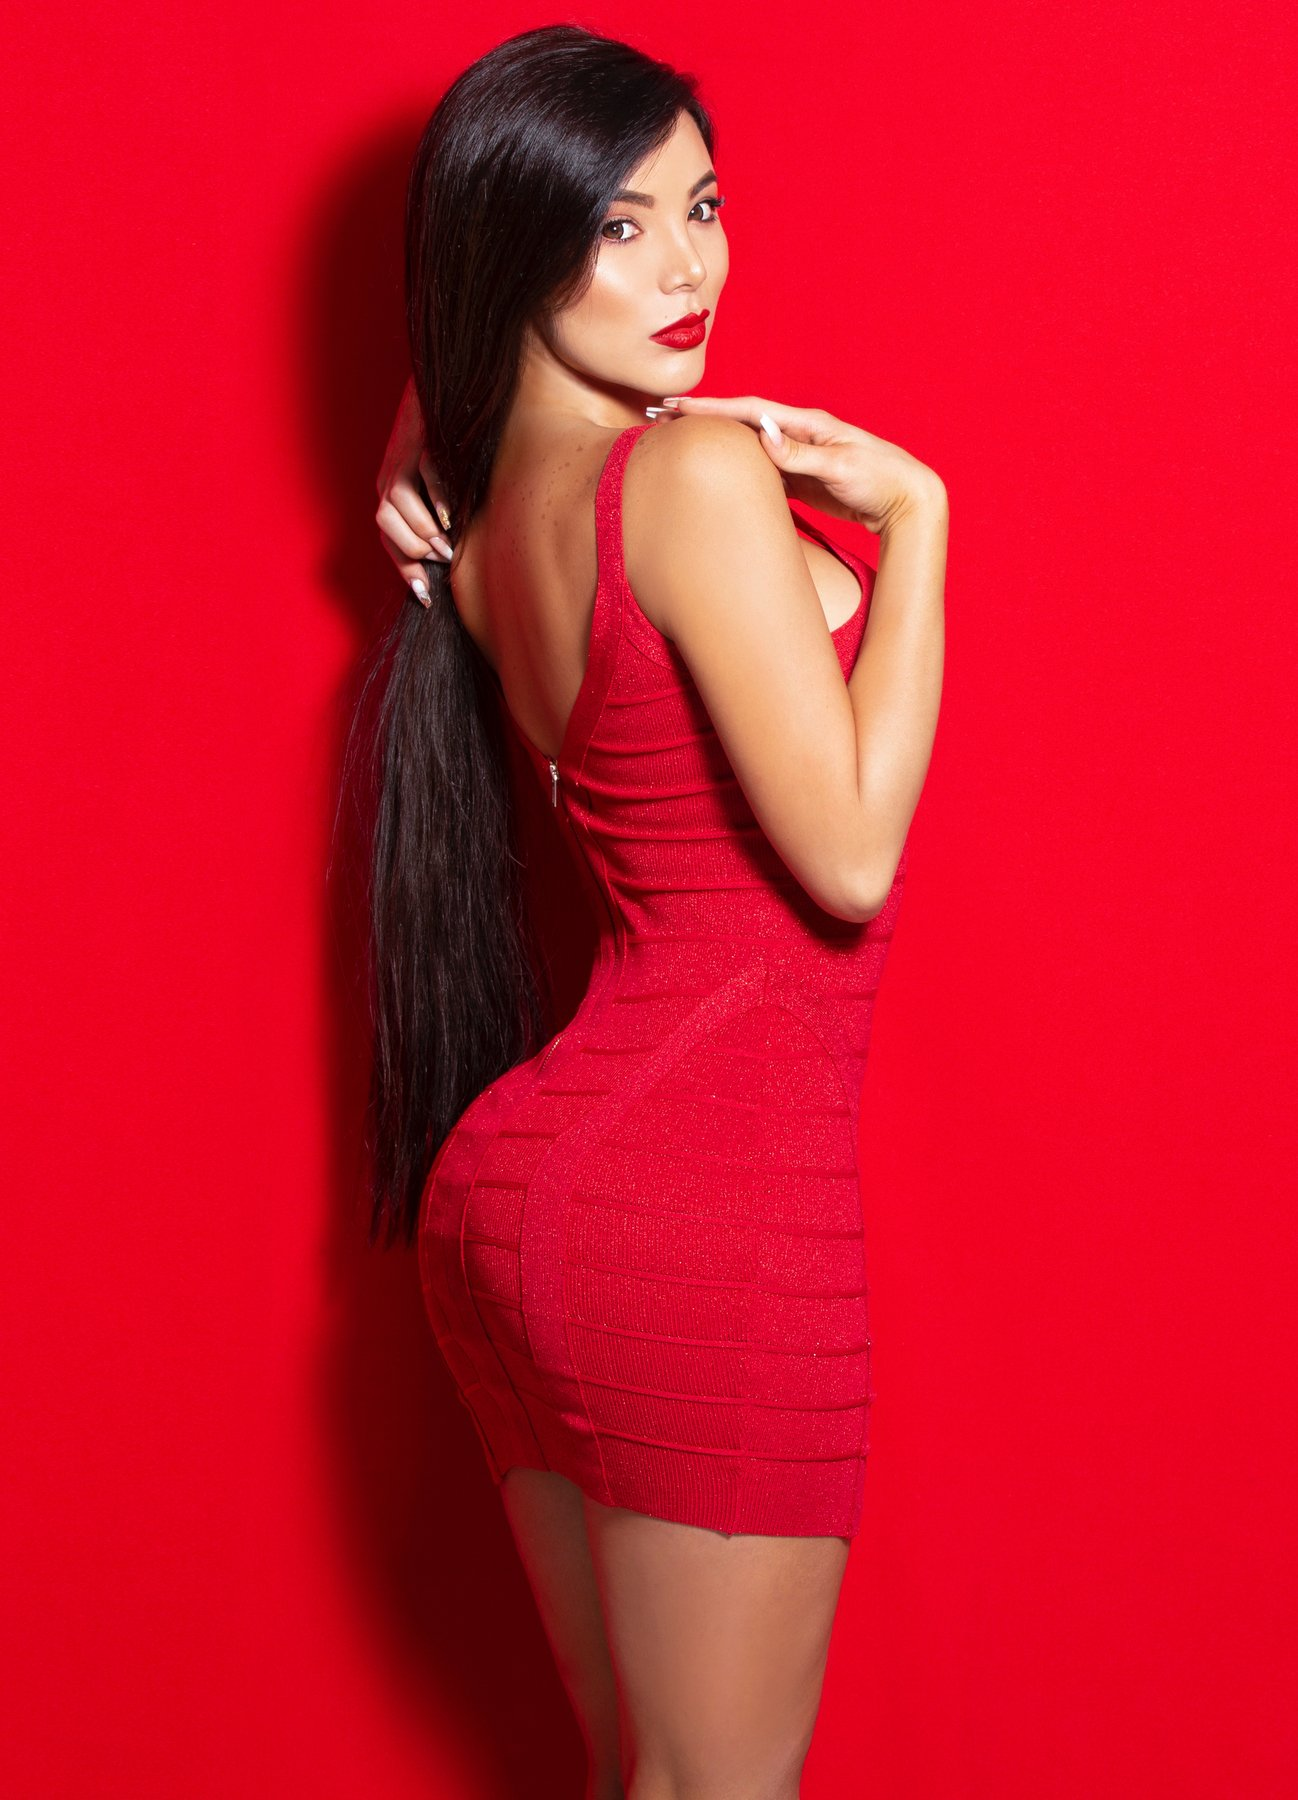 Escort girls in colombia match mote